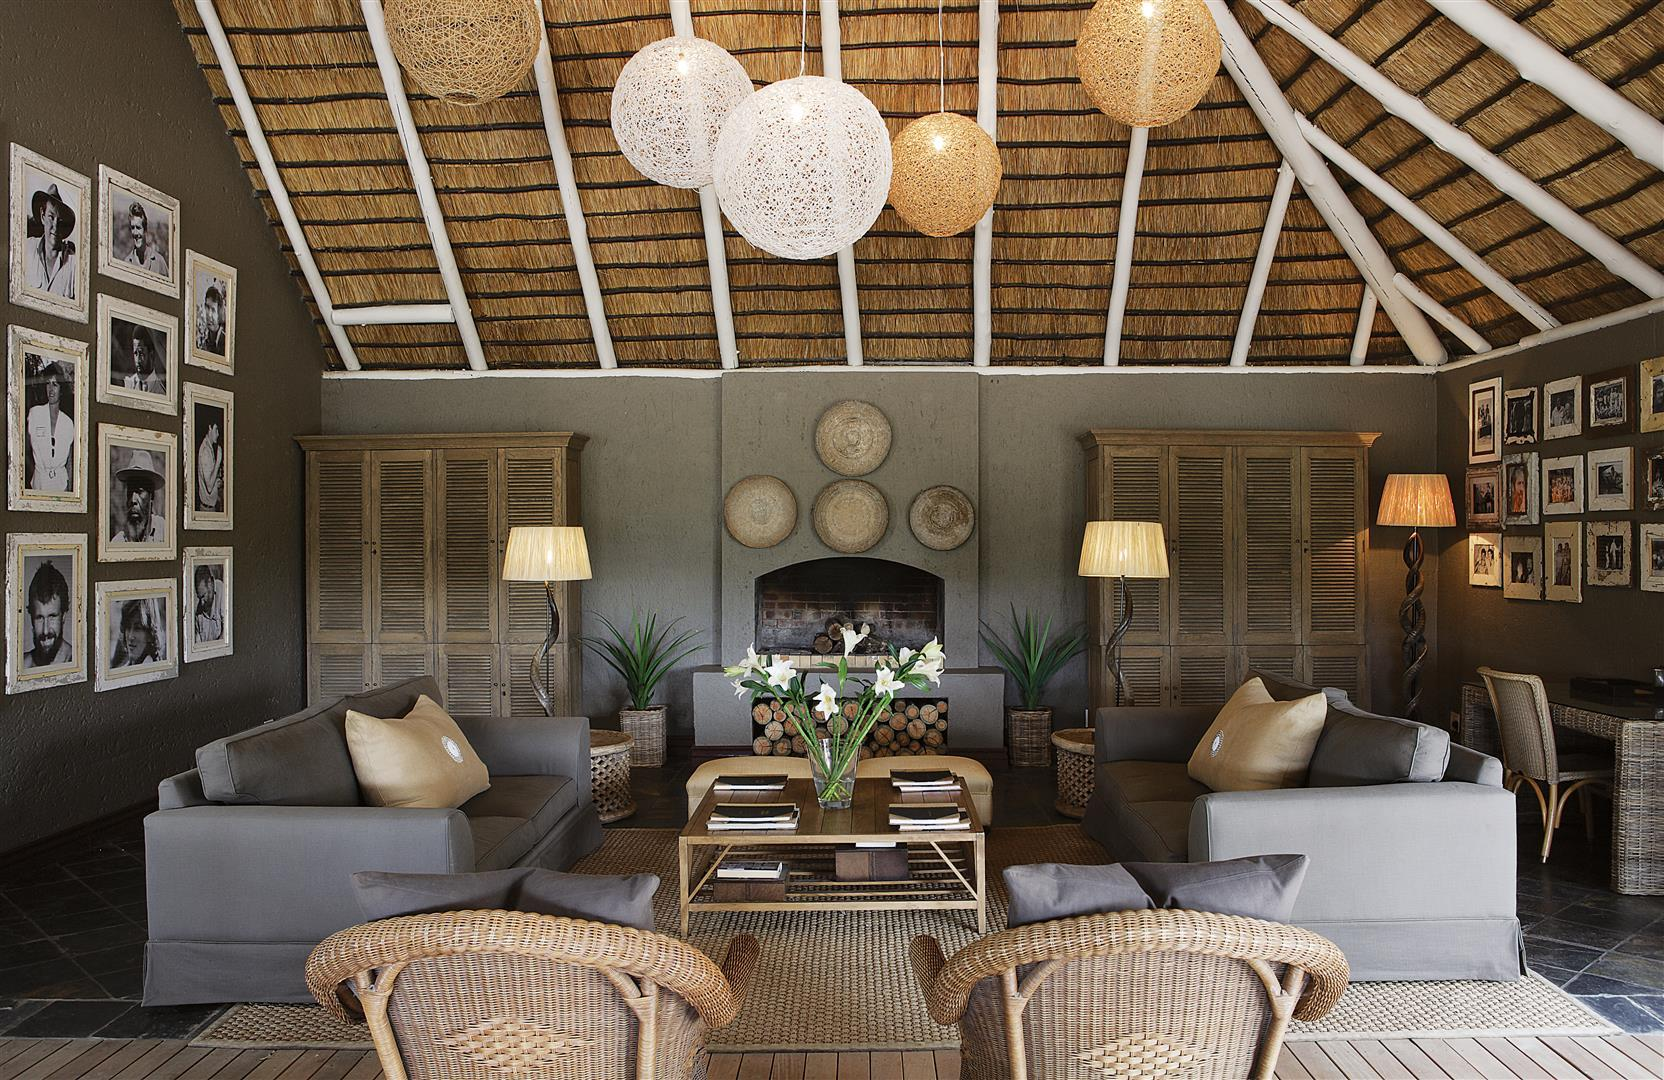 Londolozi Founder Camp living space